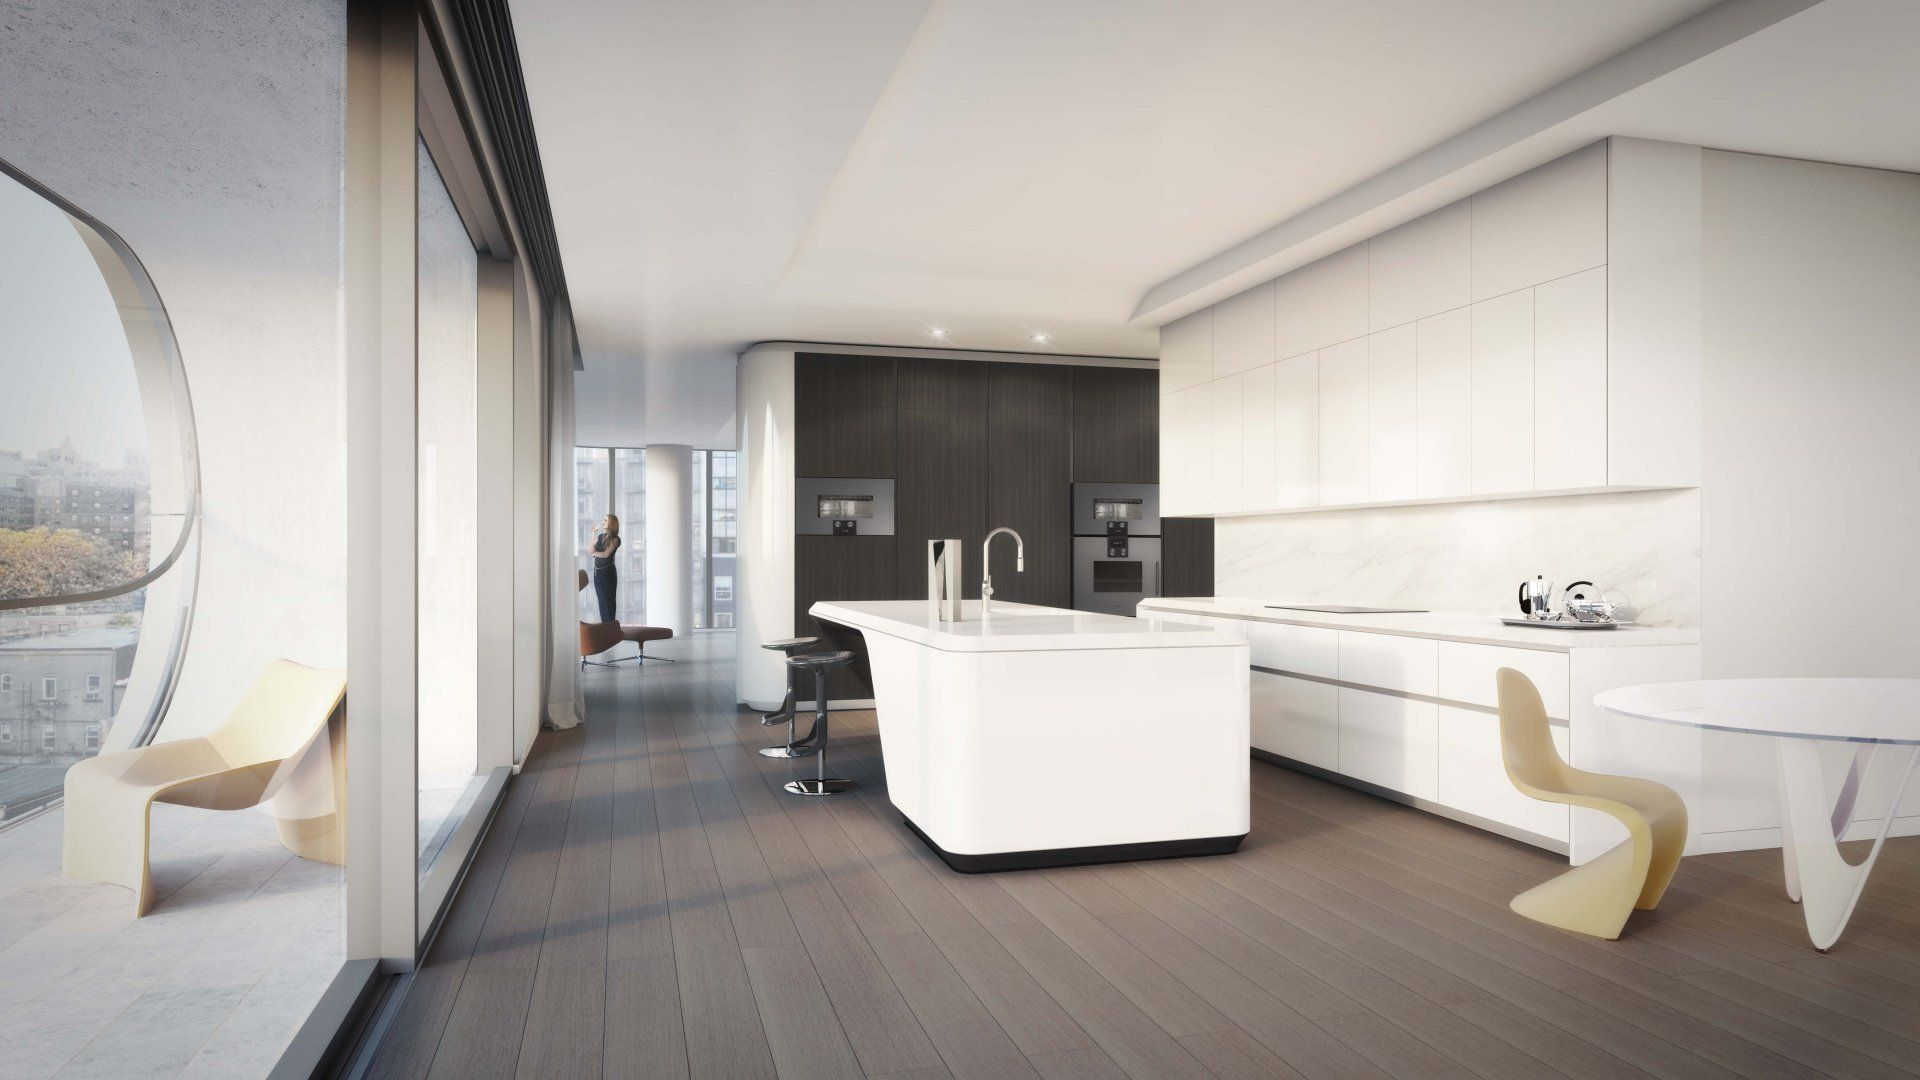 520 West 28th Street - Design - Zaha Hadid Architects | Kitchen ...